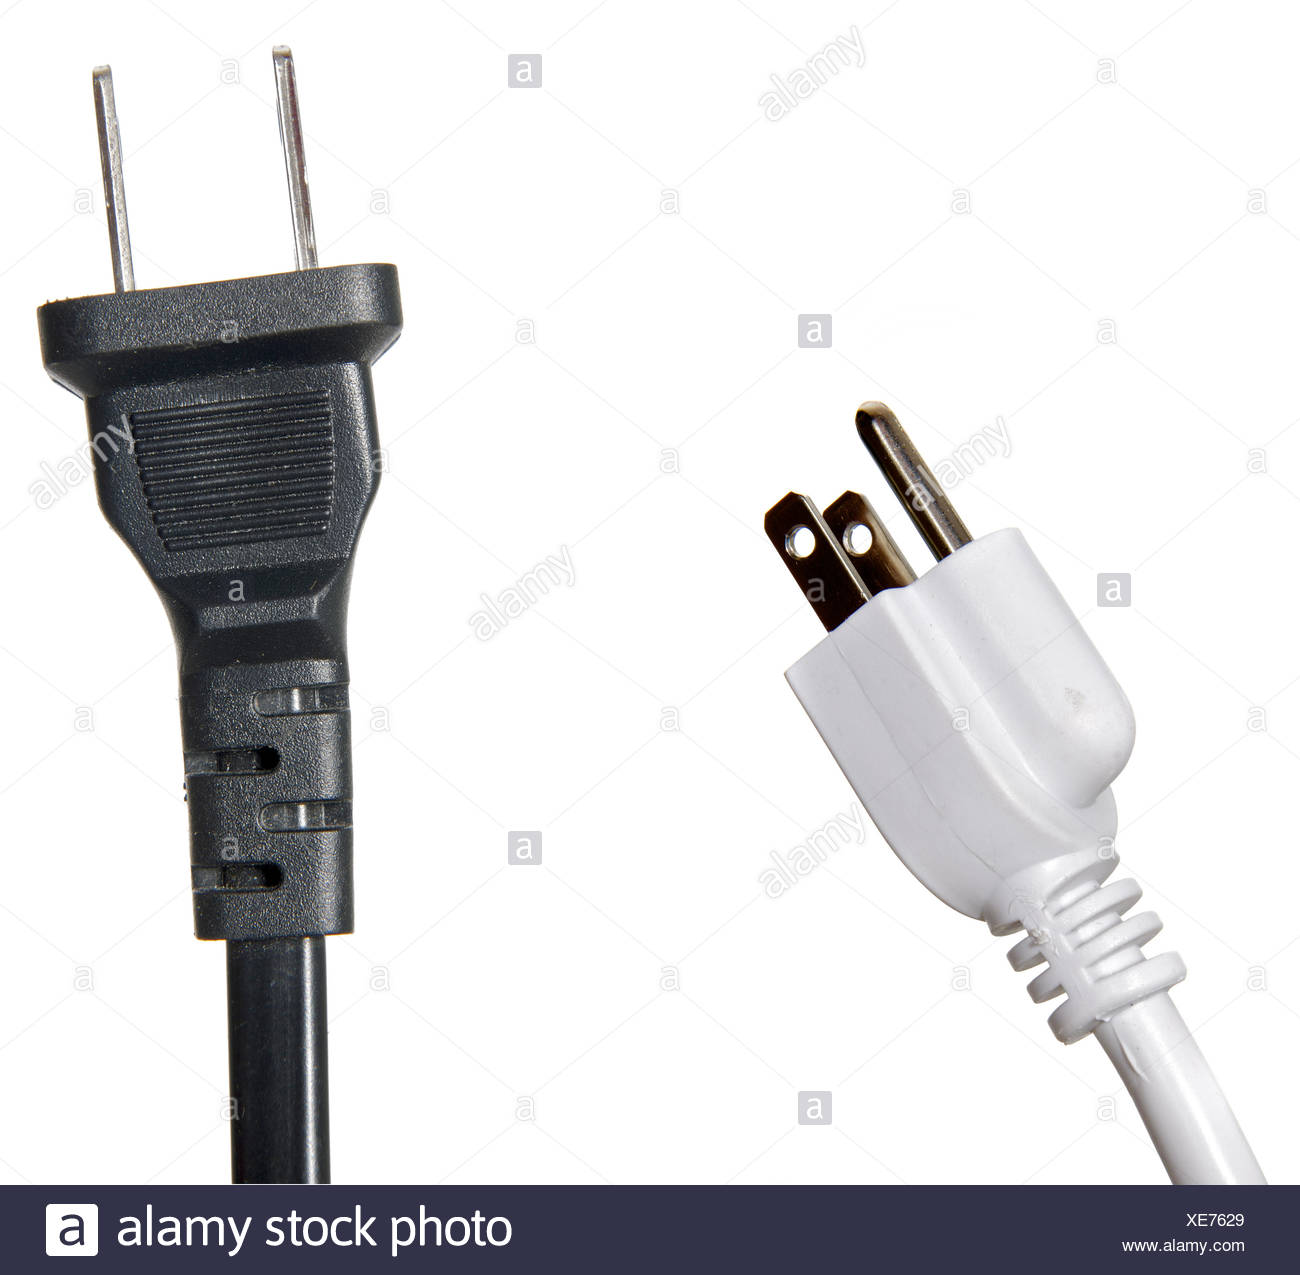 110 volt three prong electrical plug stock photo 284129505 alamy